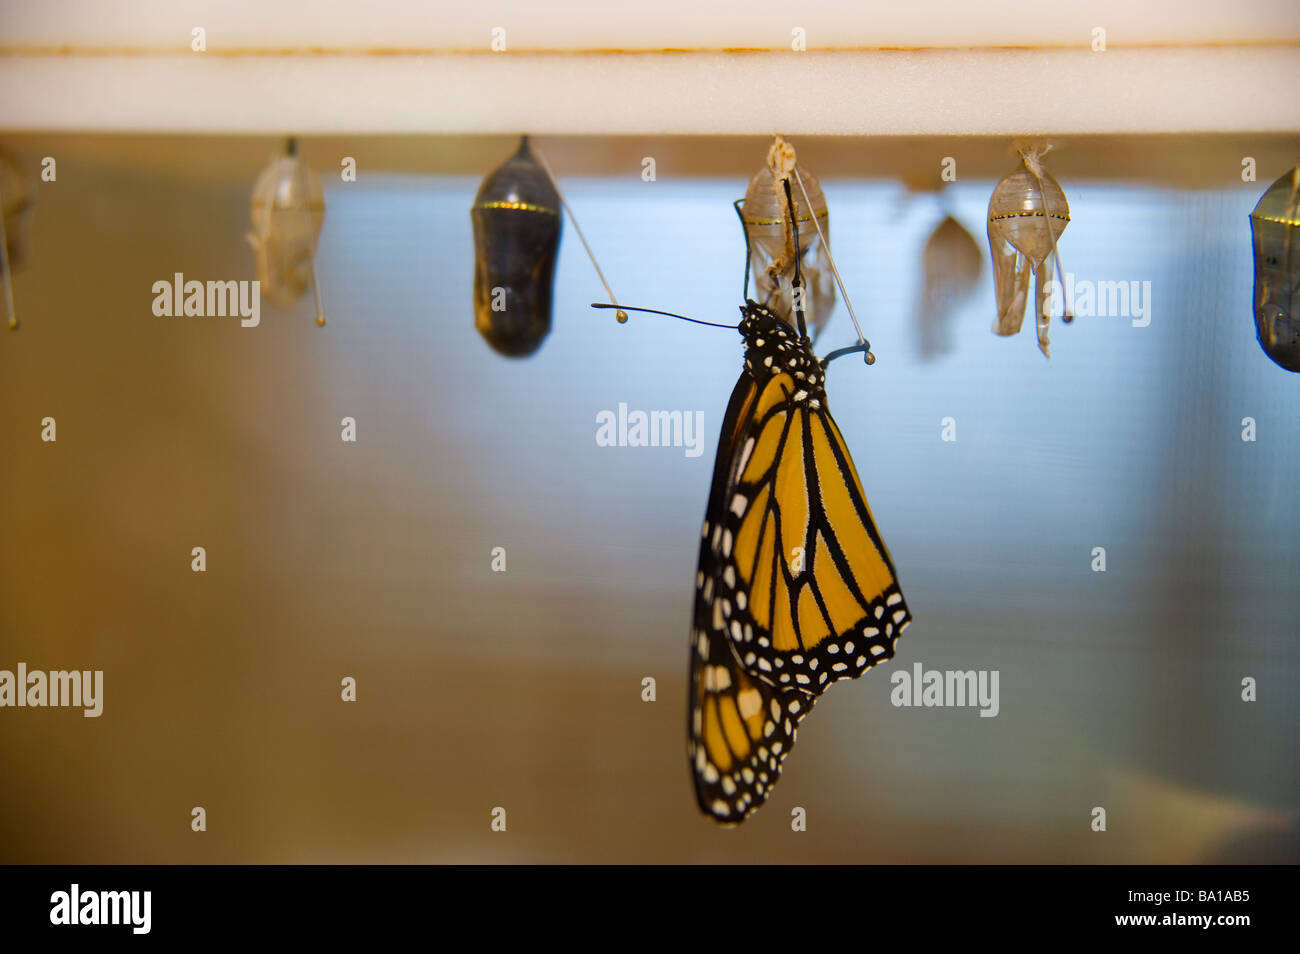 Monarch butterfly  emerges from chrysalis - Stock Image